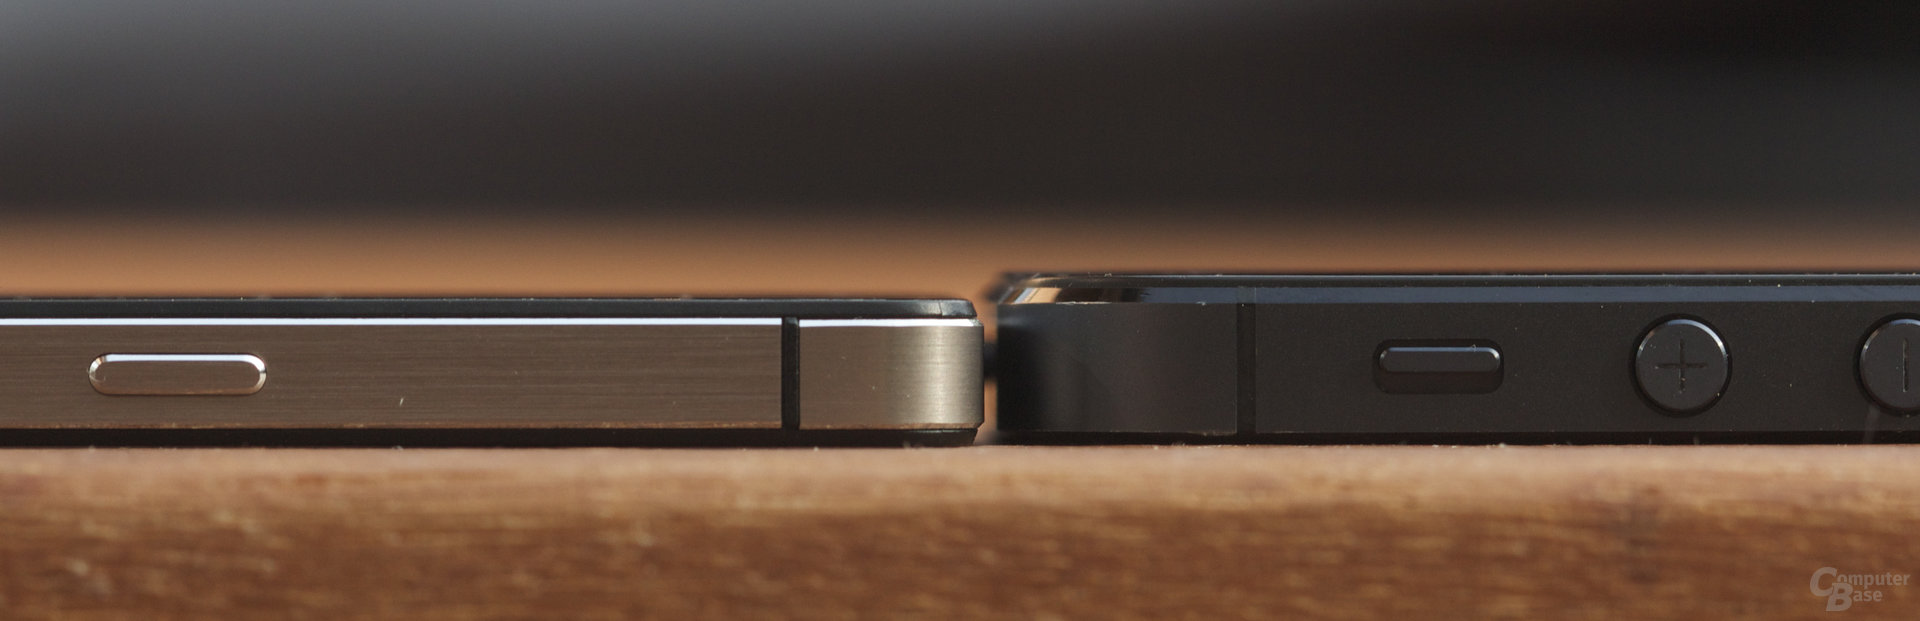 Huawei Ascend P6 links, Apple iPhone 5 rechts